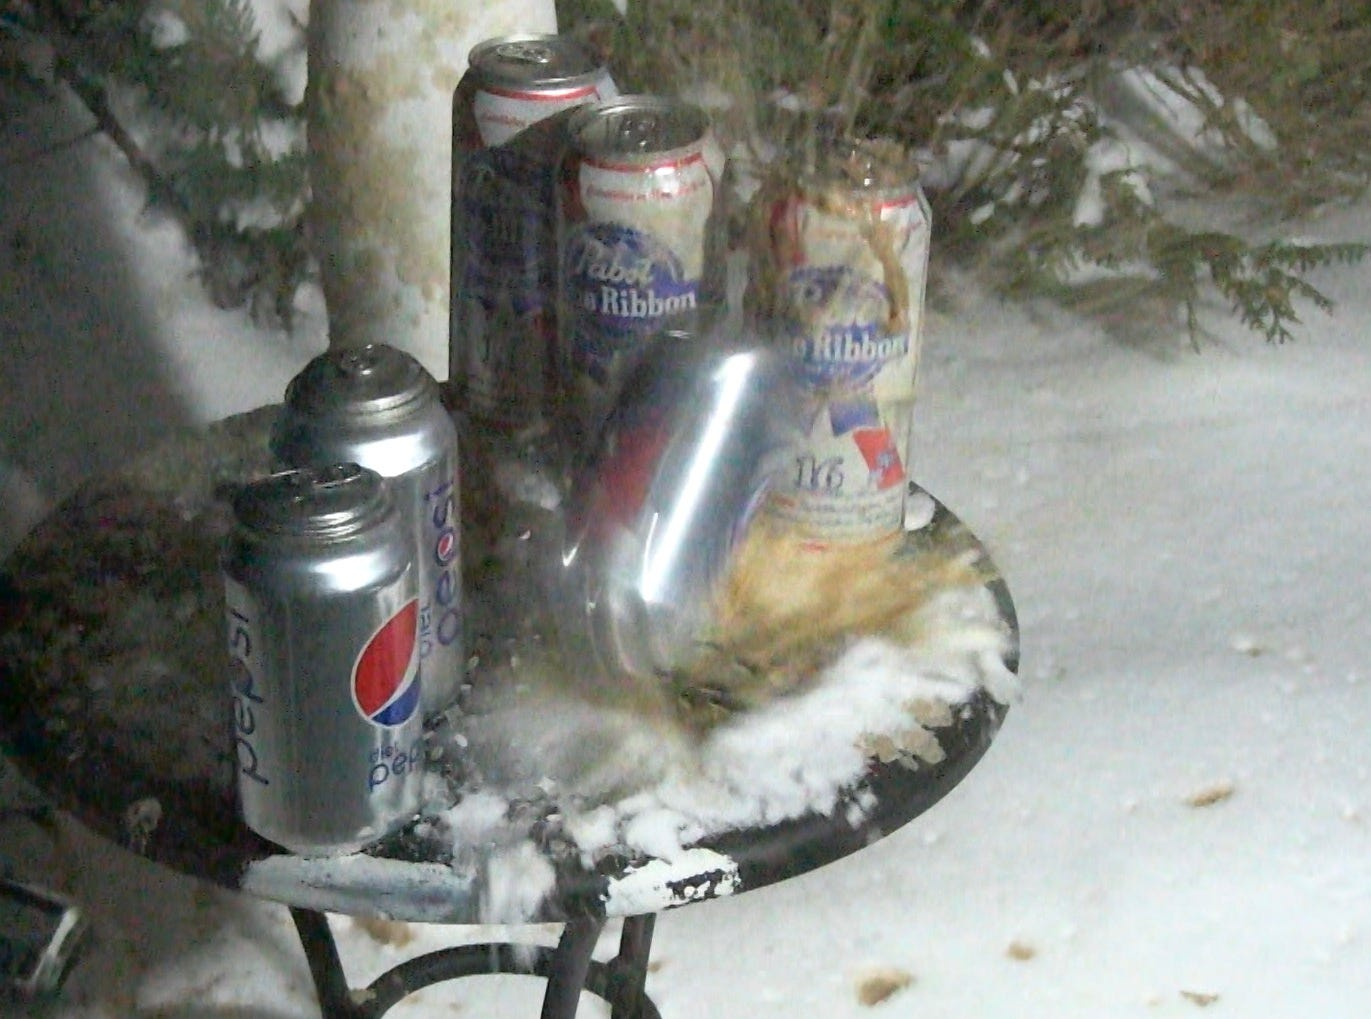 Soda and beer cans explode in the cold.